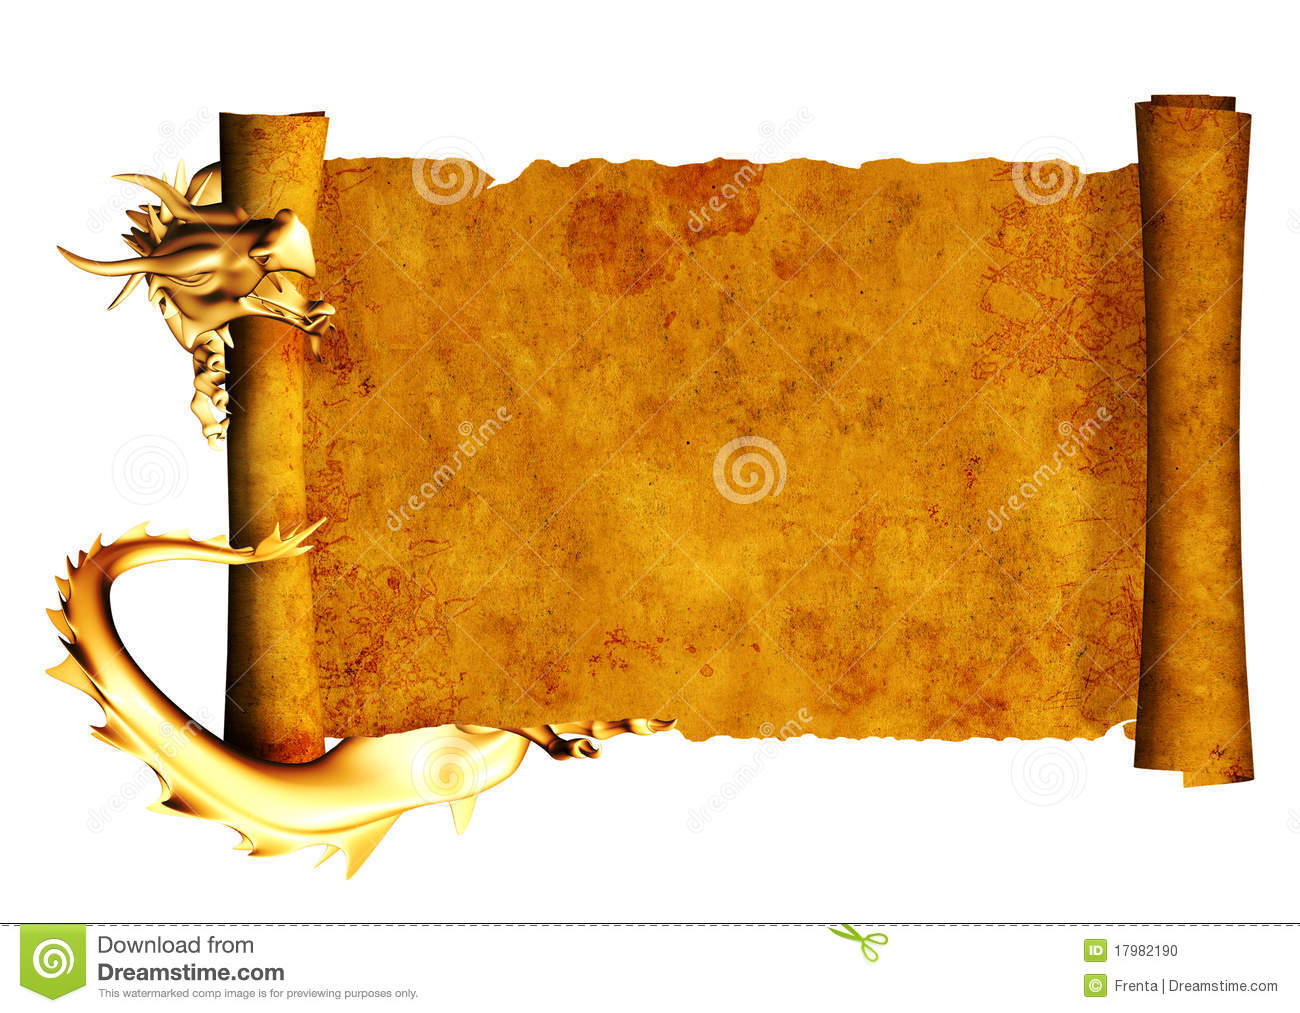 Dragon And Scroll Of Old Parchment Stock Photo - Image: 17982190